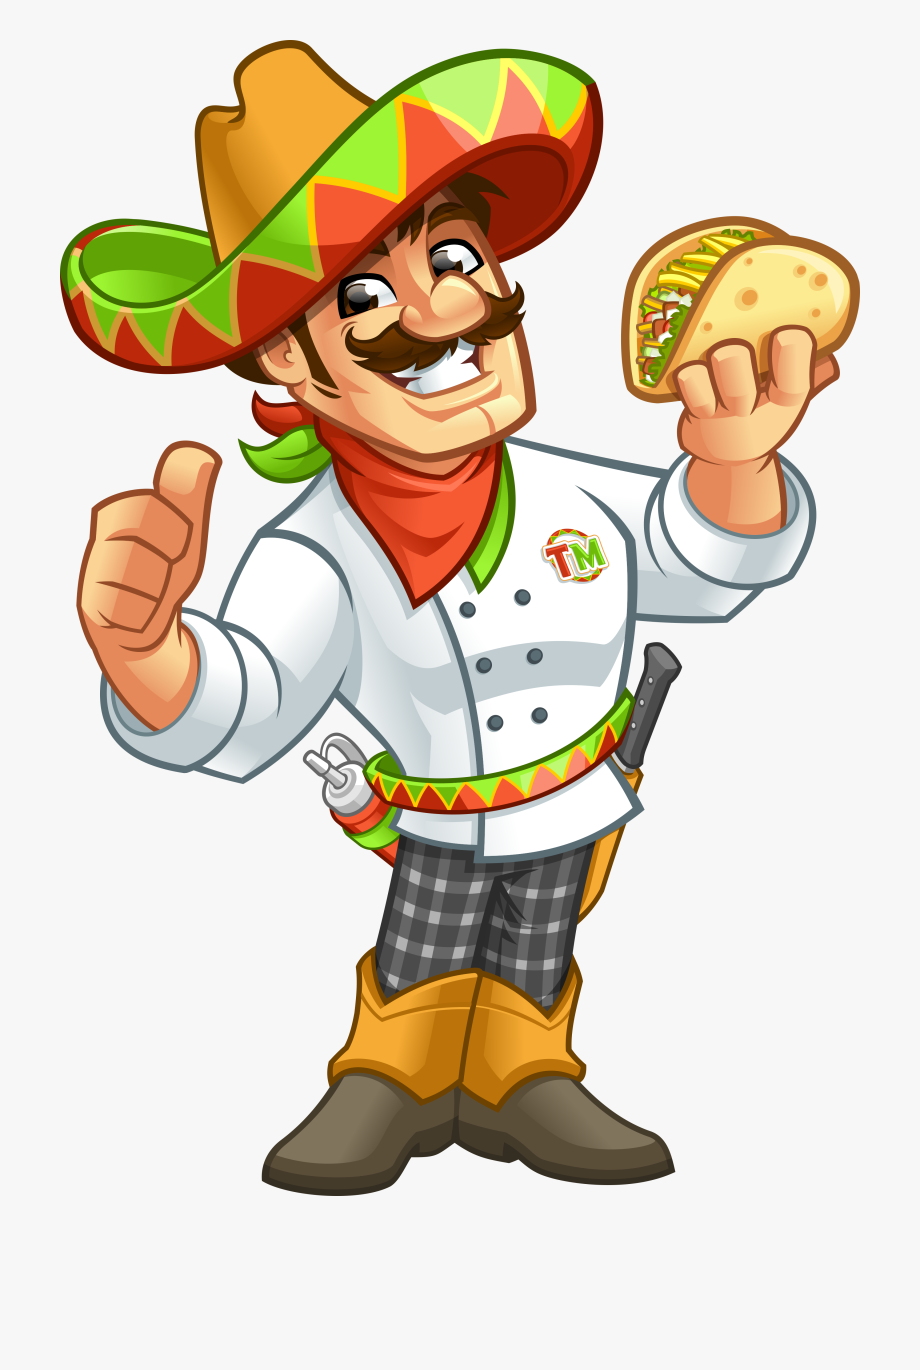 Beach mexican guy clipart picture library My Taco Man Staff Mexican Man Png - My Taco Man, Cliparts & Cartoons ... picture library